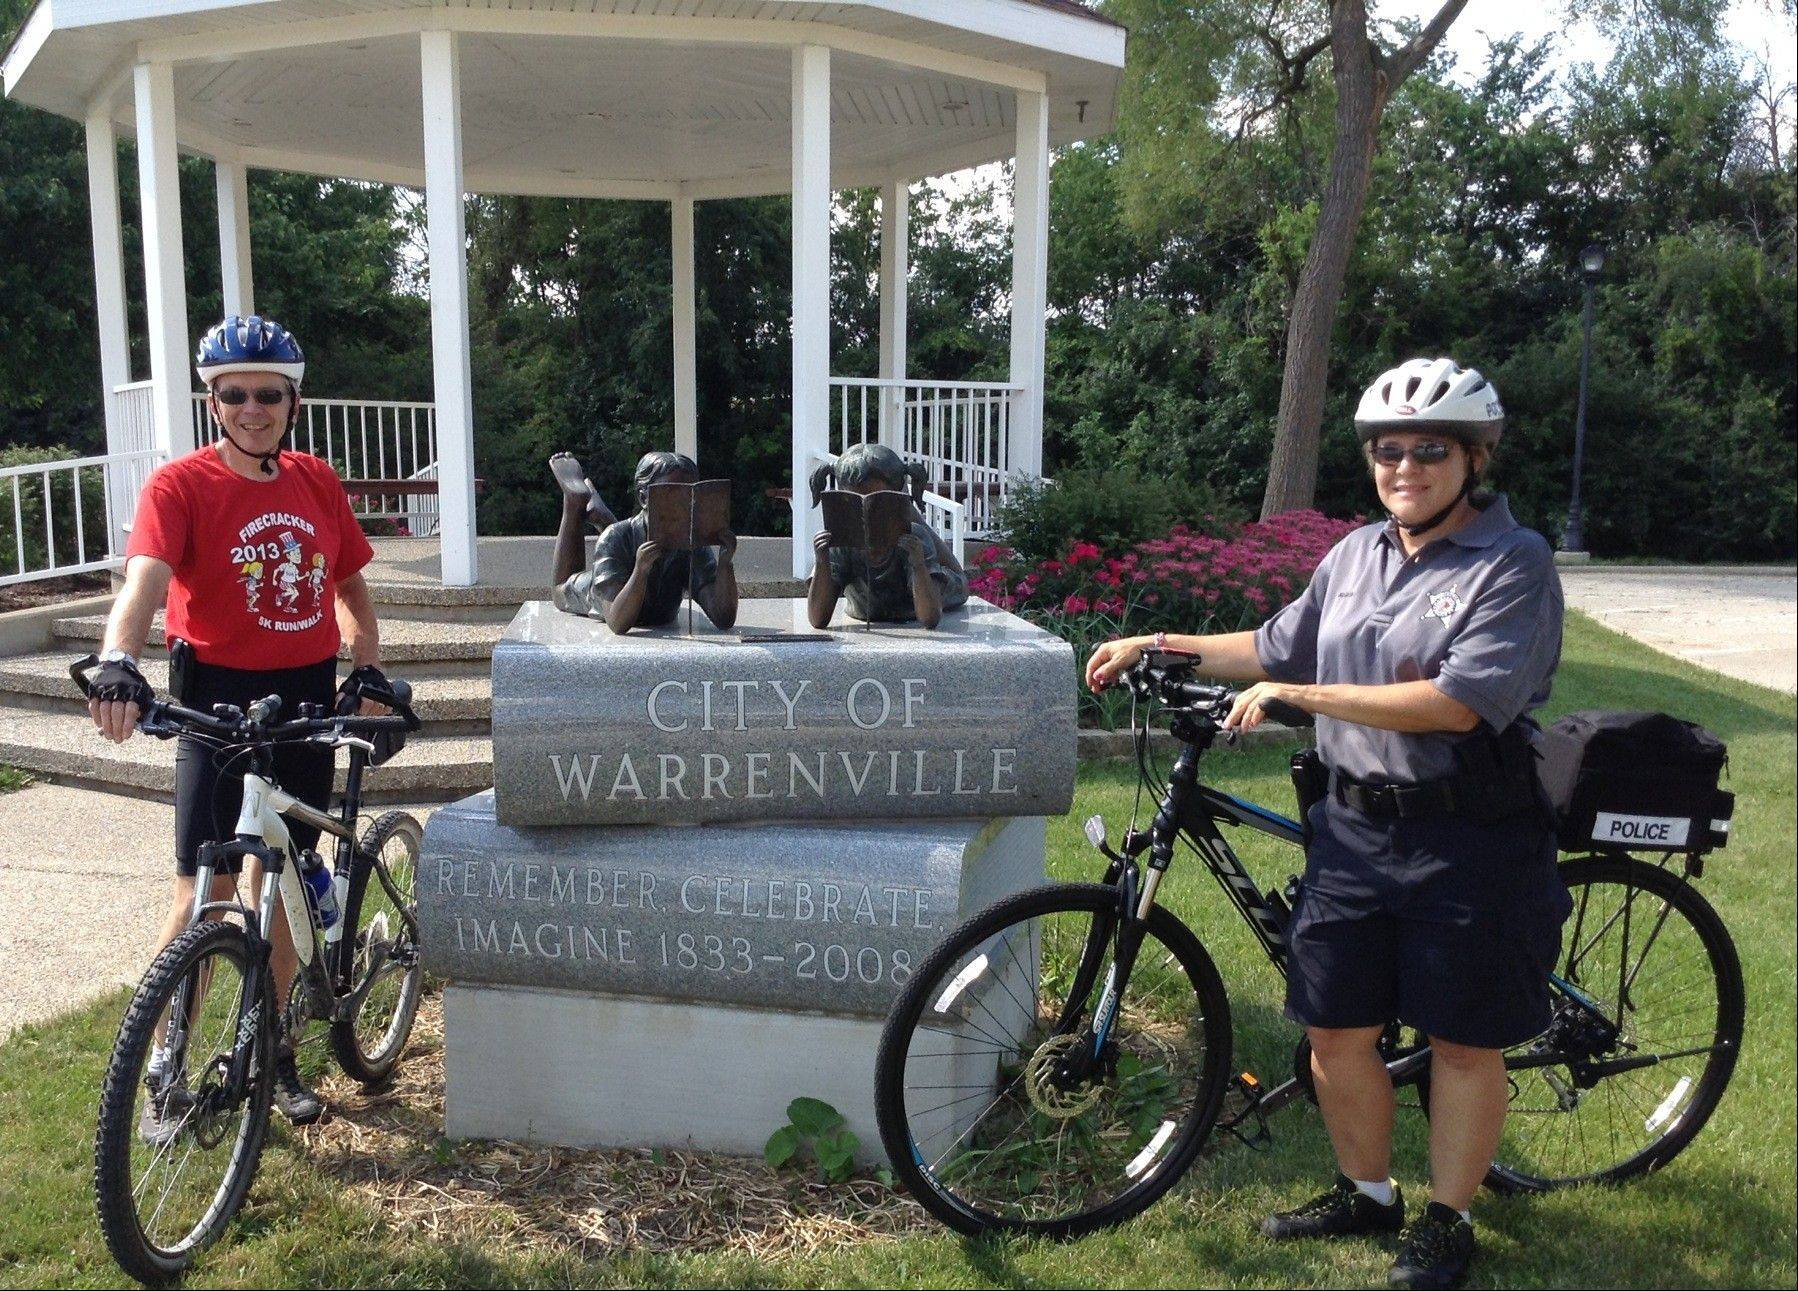 Warrenville police officer Teresa McBride, right, and Mayor David Brummel meet Wednesday to mark the start of the city's fledgling police bike patrol program. McBride will spend several hours a week patrolling parks, paths and other hard-to-reach places in Warrenville.